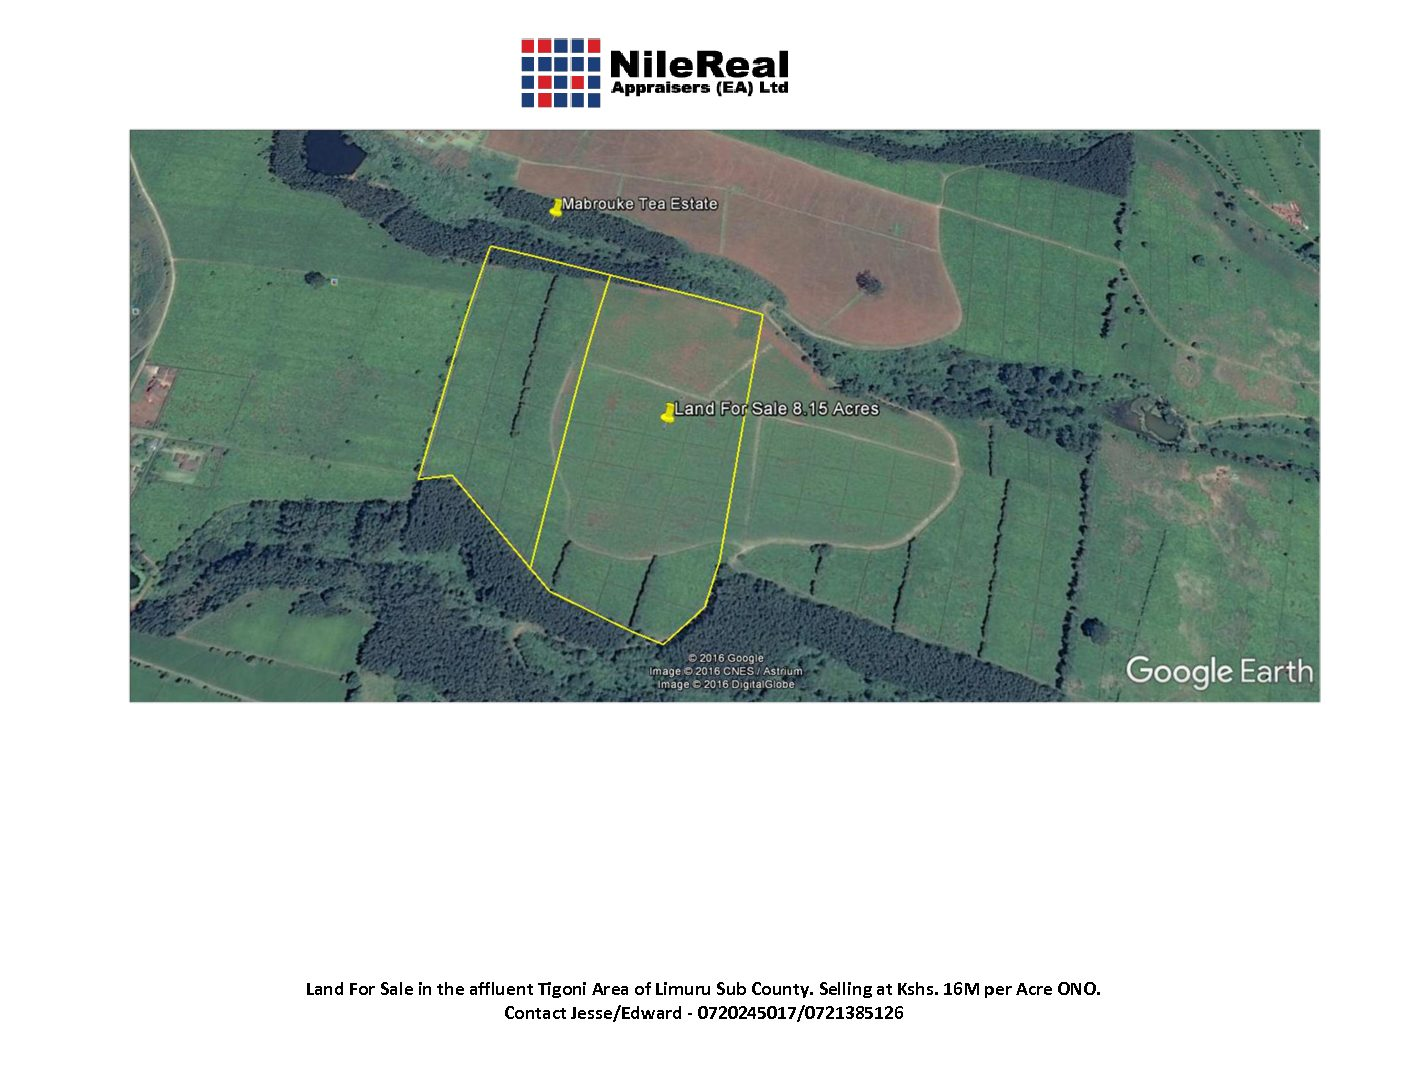 26 Acres Land For Sale In Tigoni Nilereal Appraisers